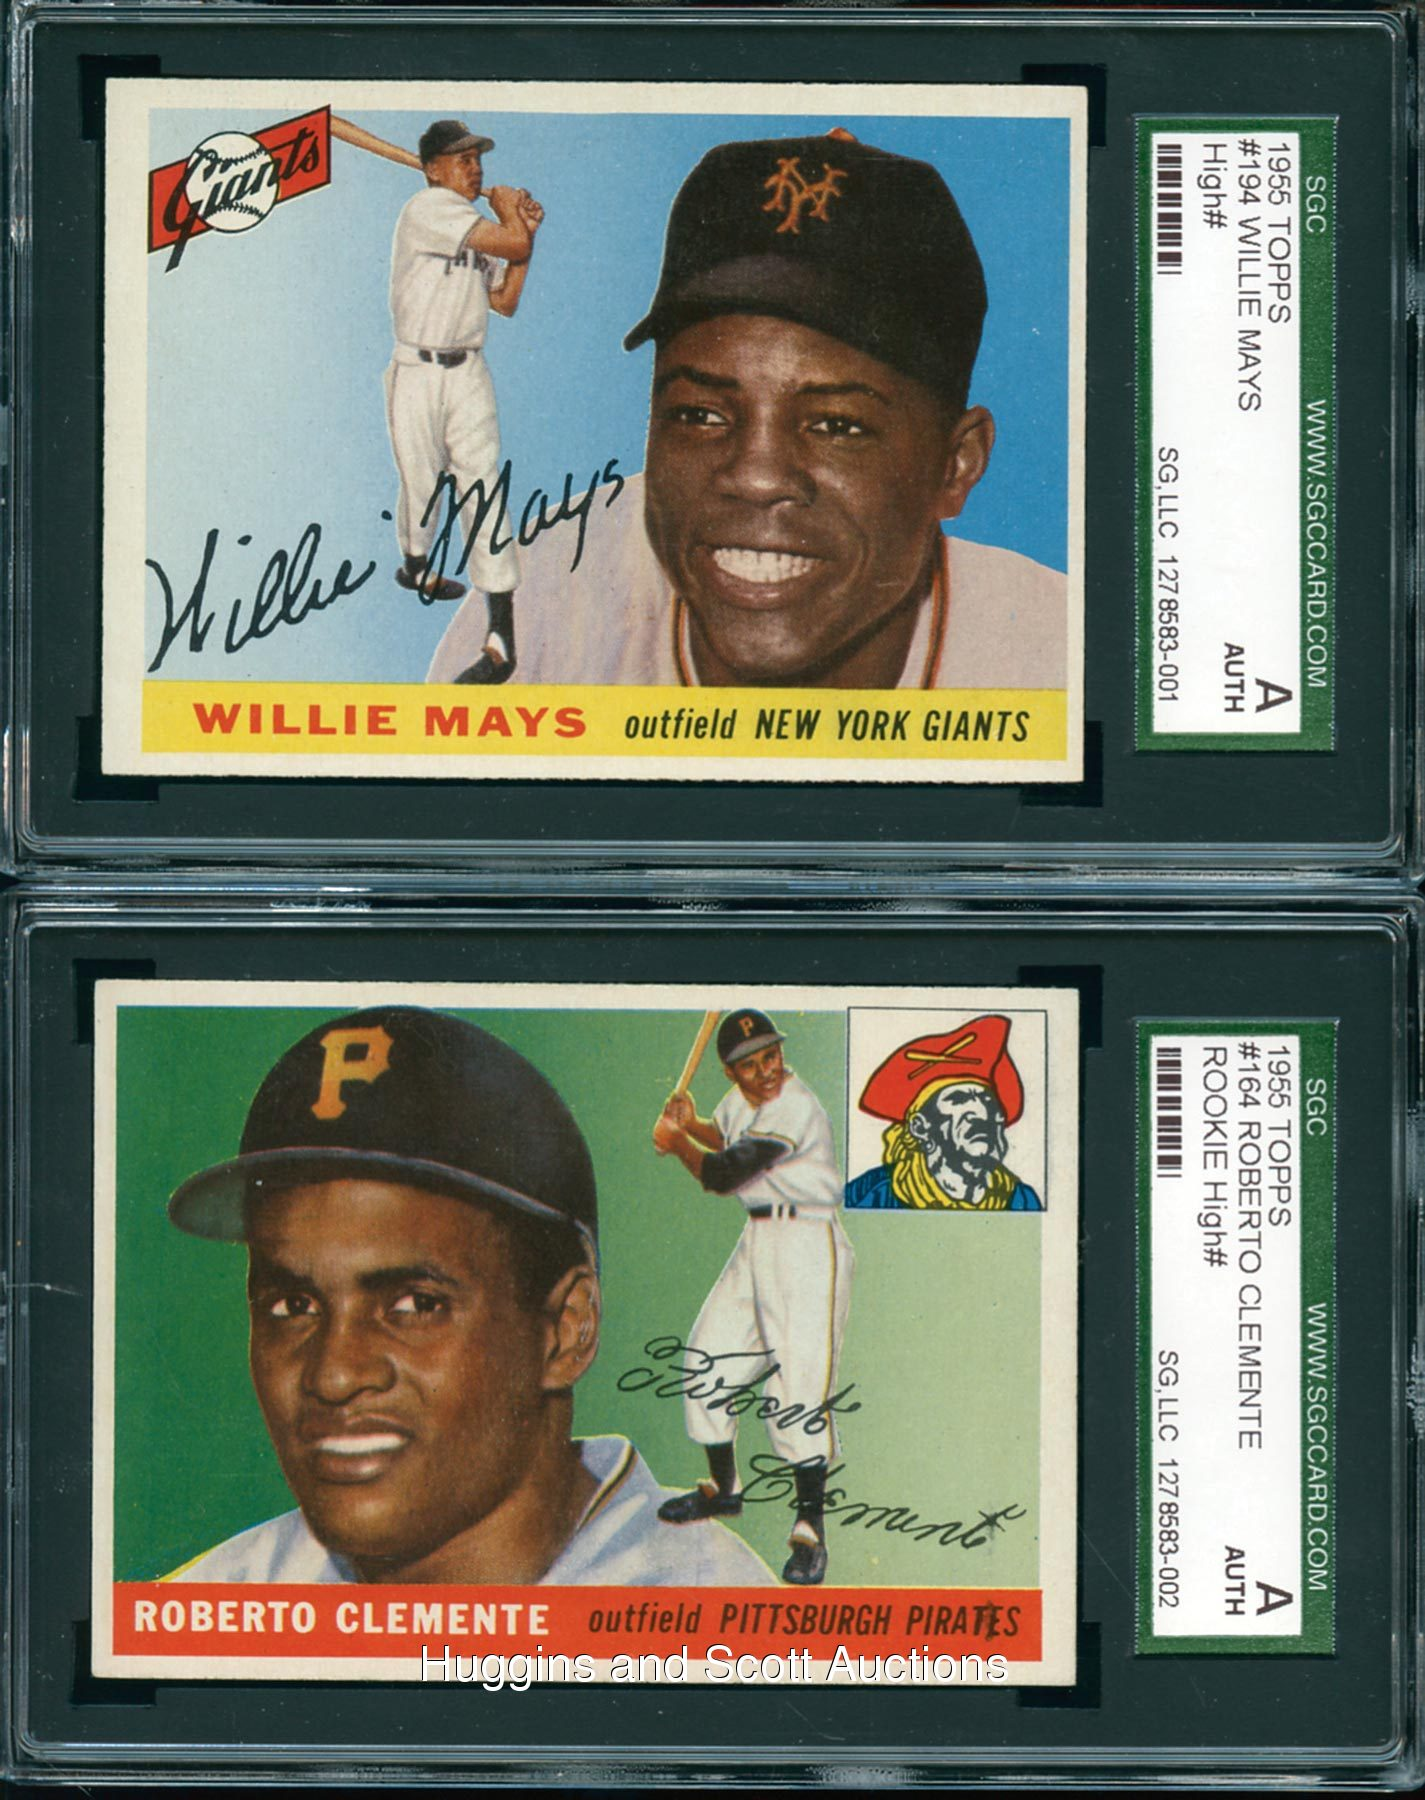 Topps Roberto Clemente Amp Willie Mays